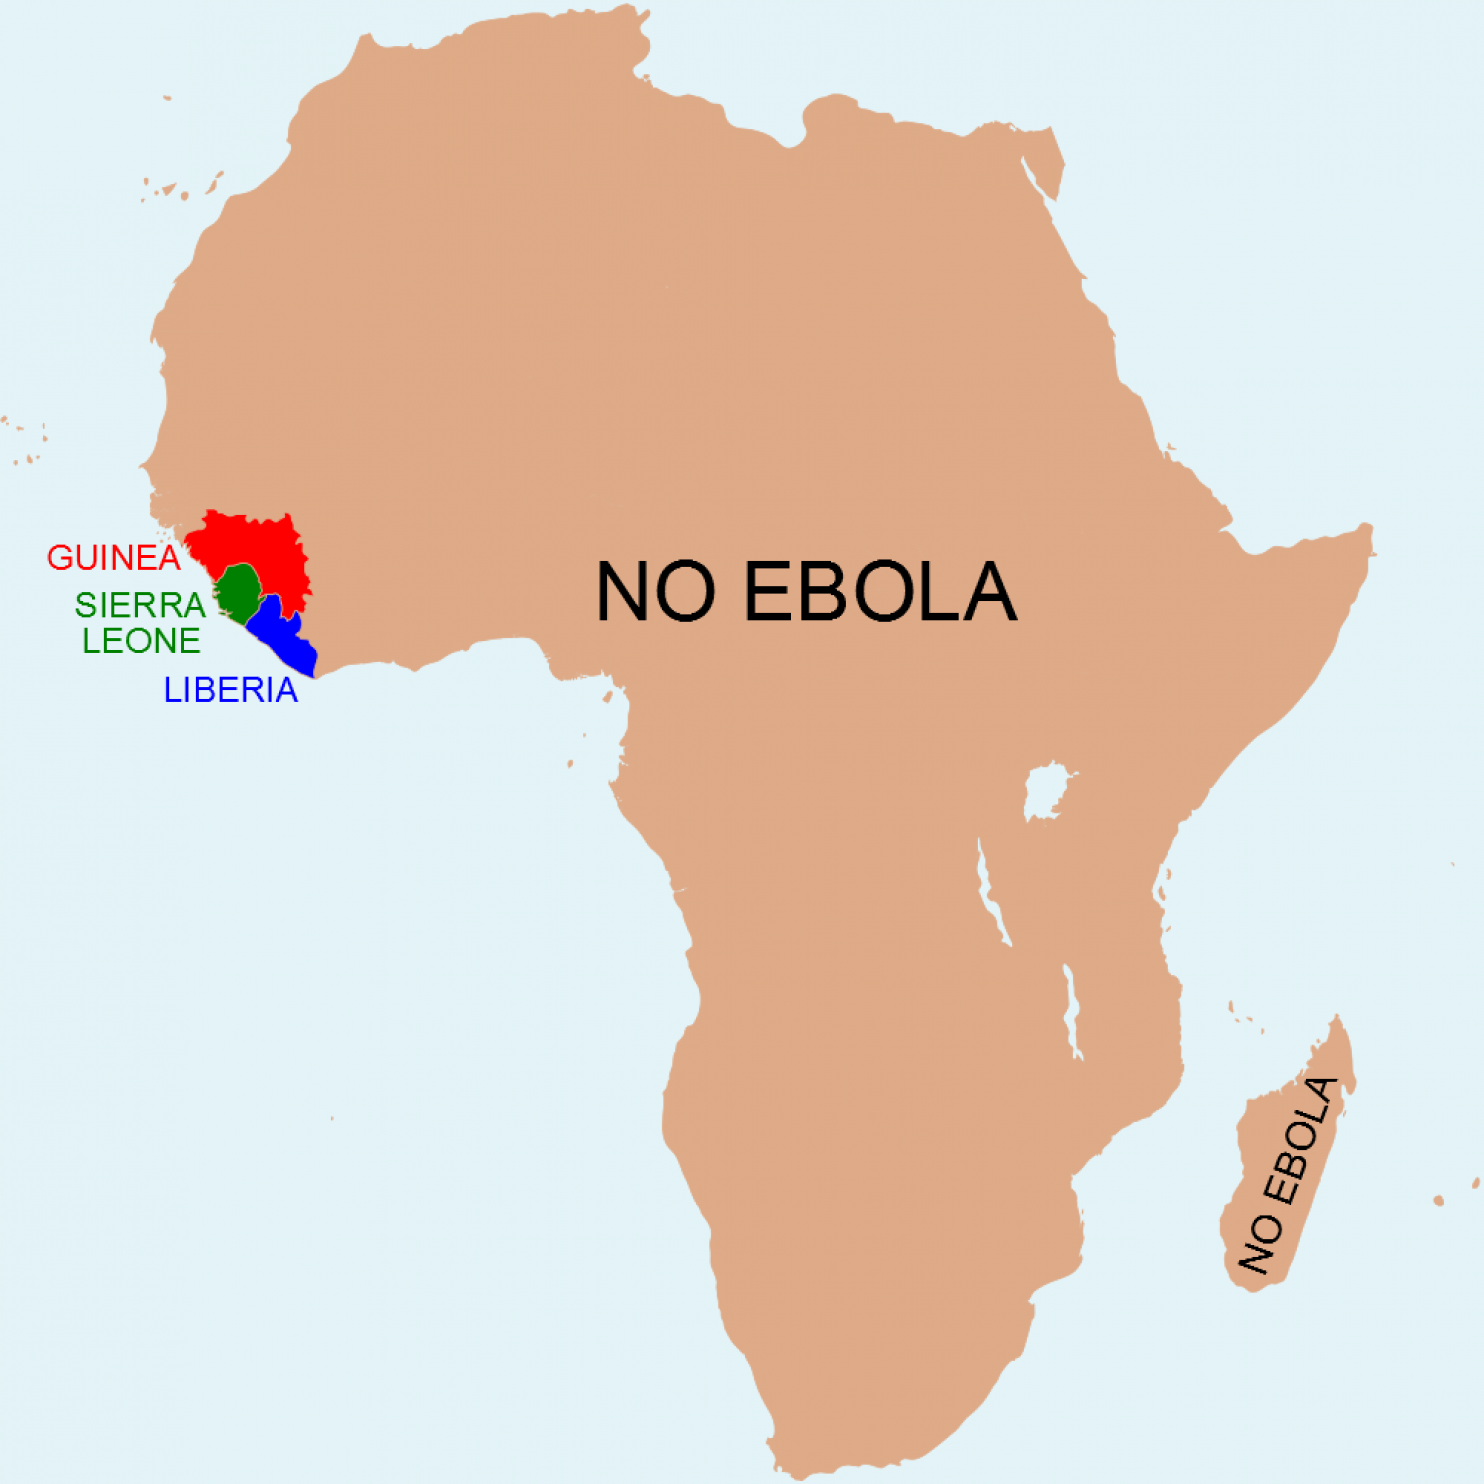 Map The Africa without Ebola Africa Politics and Current events